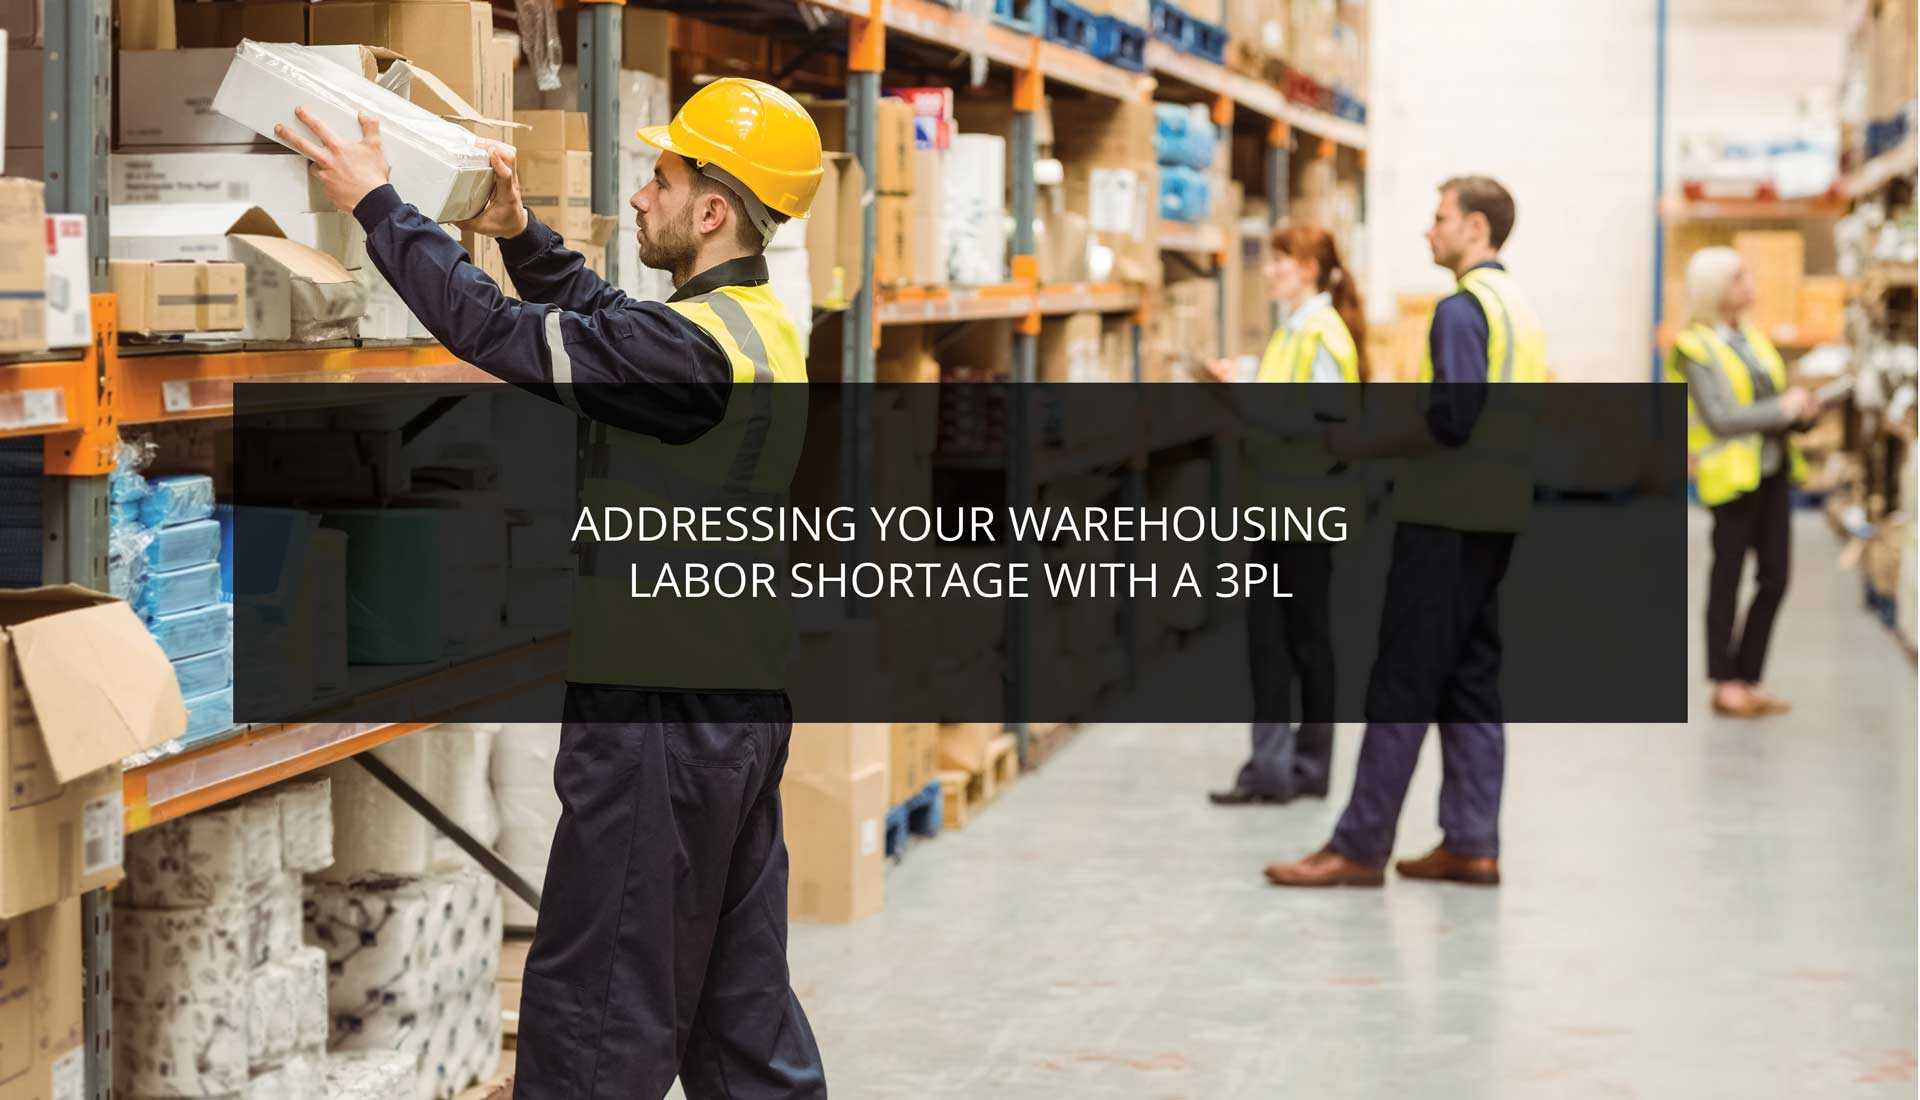 Addressing Your Warehousing Labor Shortage With a 3PL